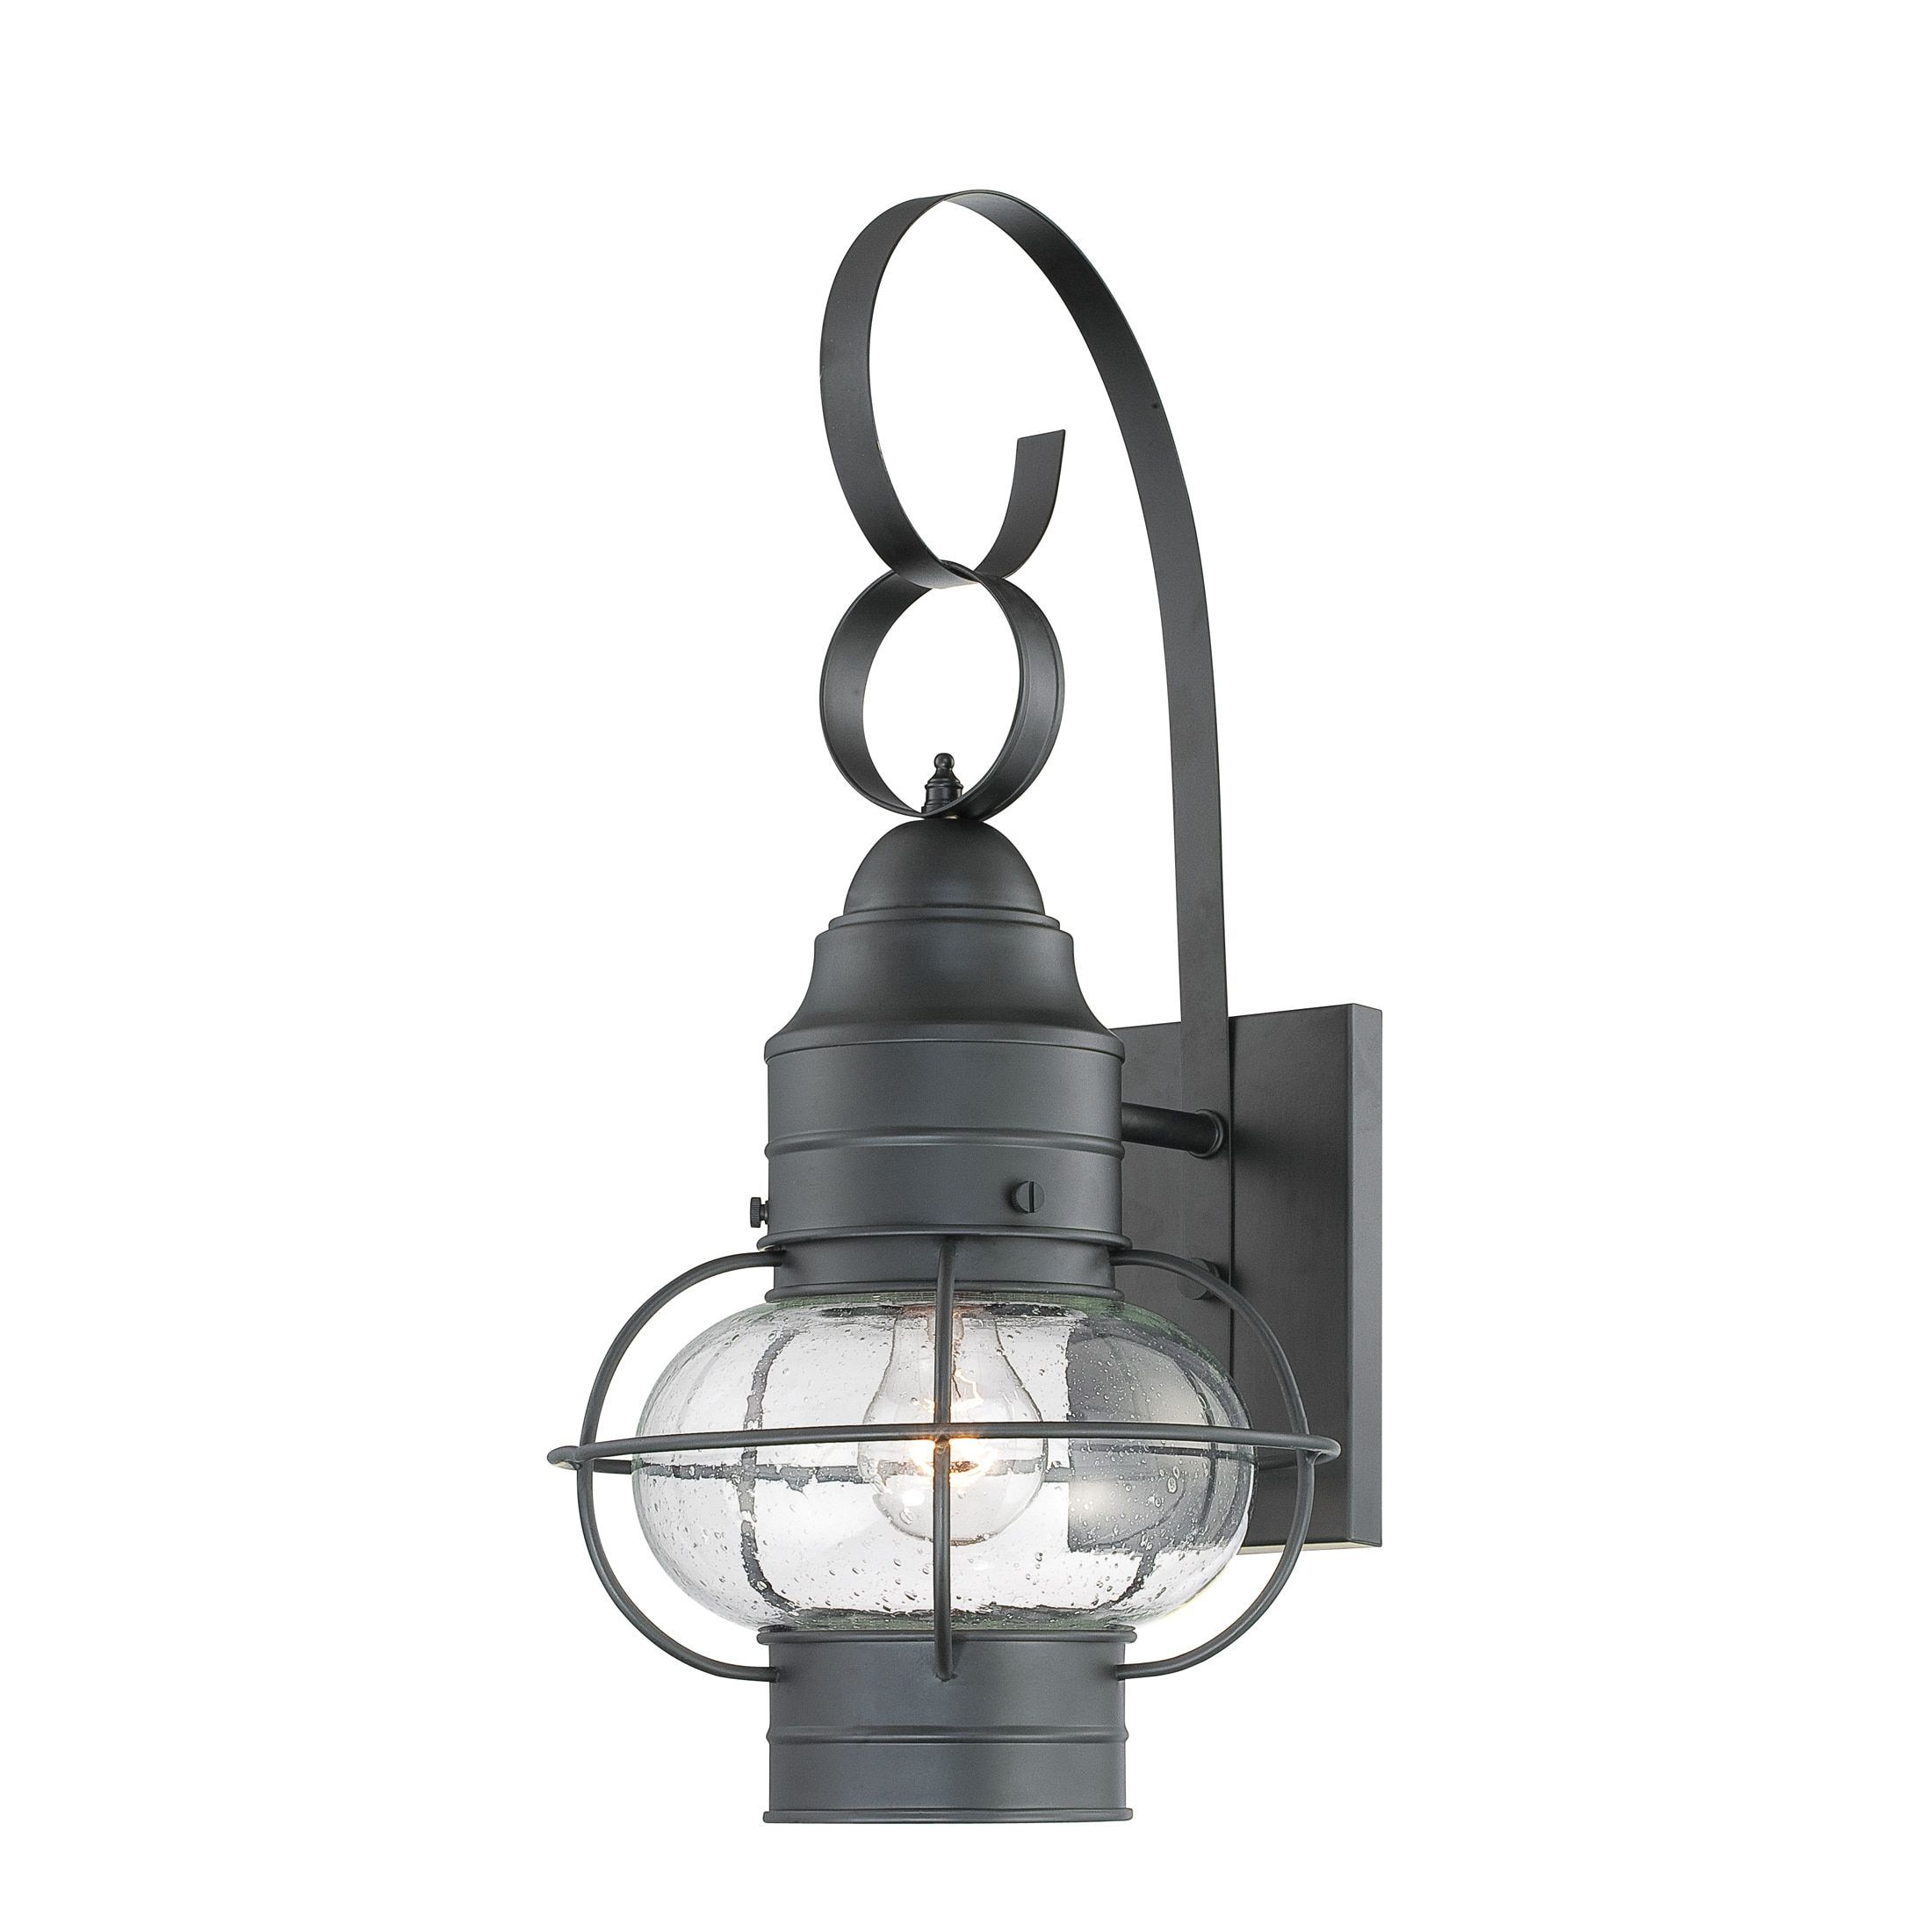 Quoizel cooper outdoor light fixture copper brown outdoor quoizel cooper outdoor light fixture copper brown outdoor fluorescent light fixture aloadofball Image collections